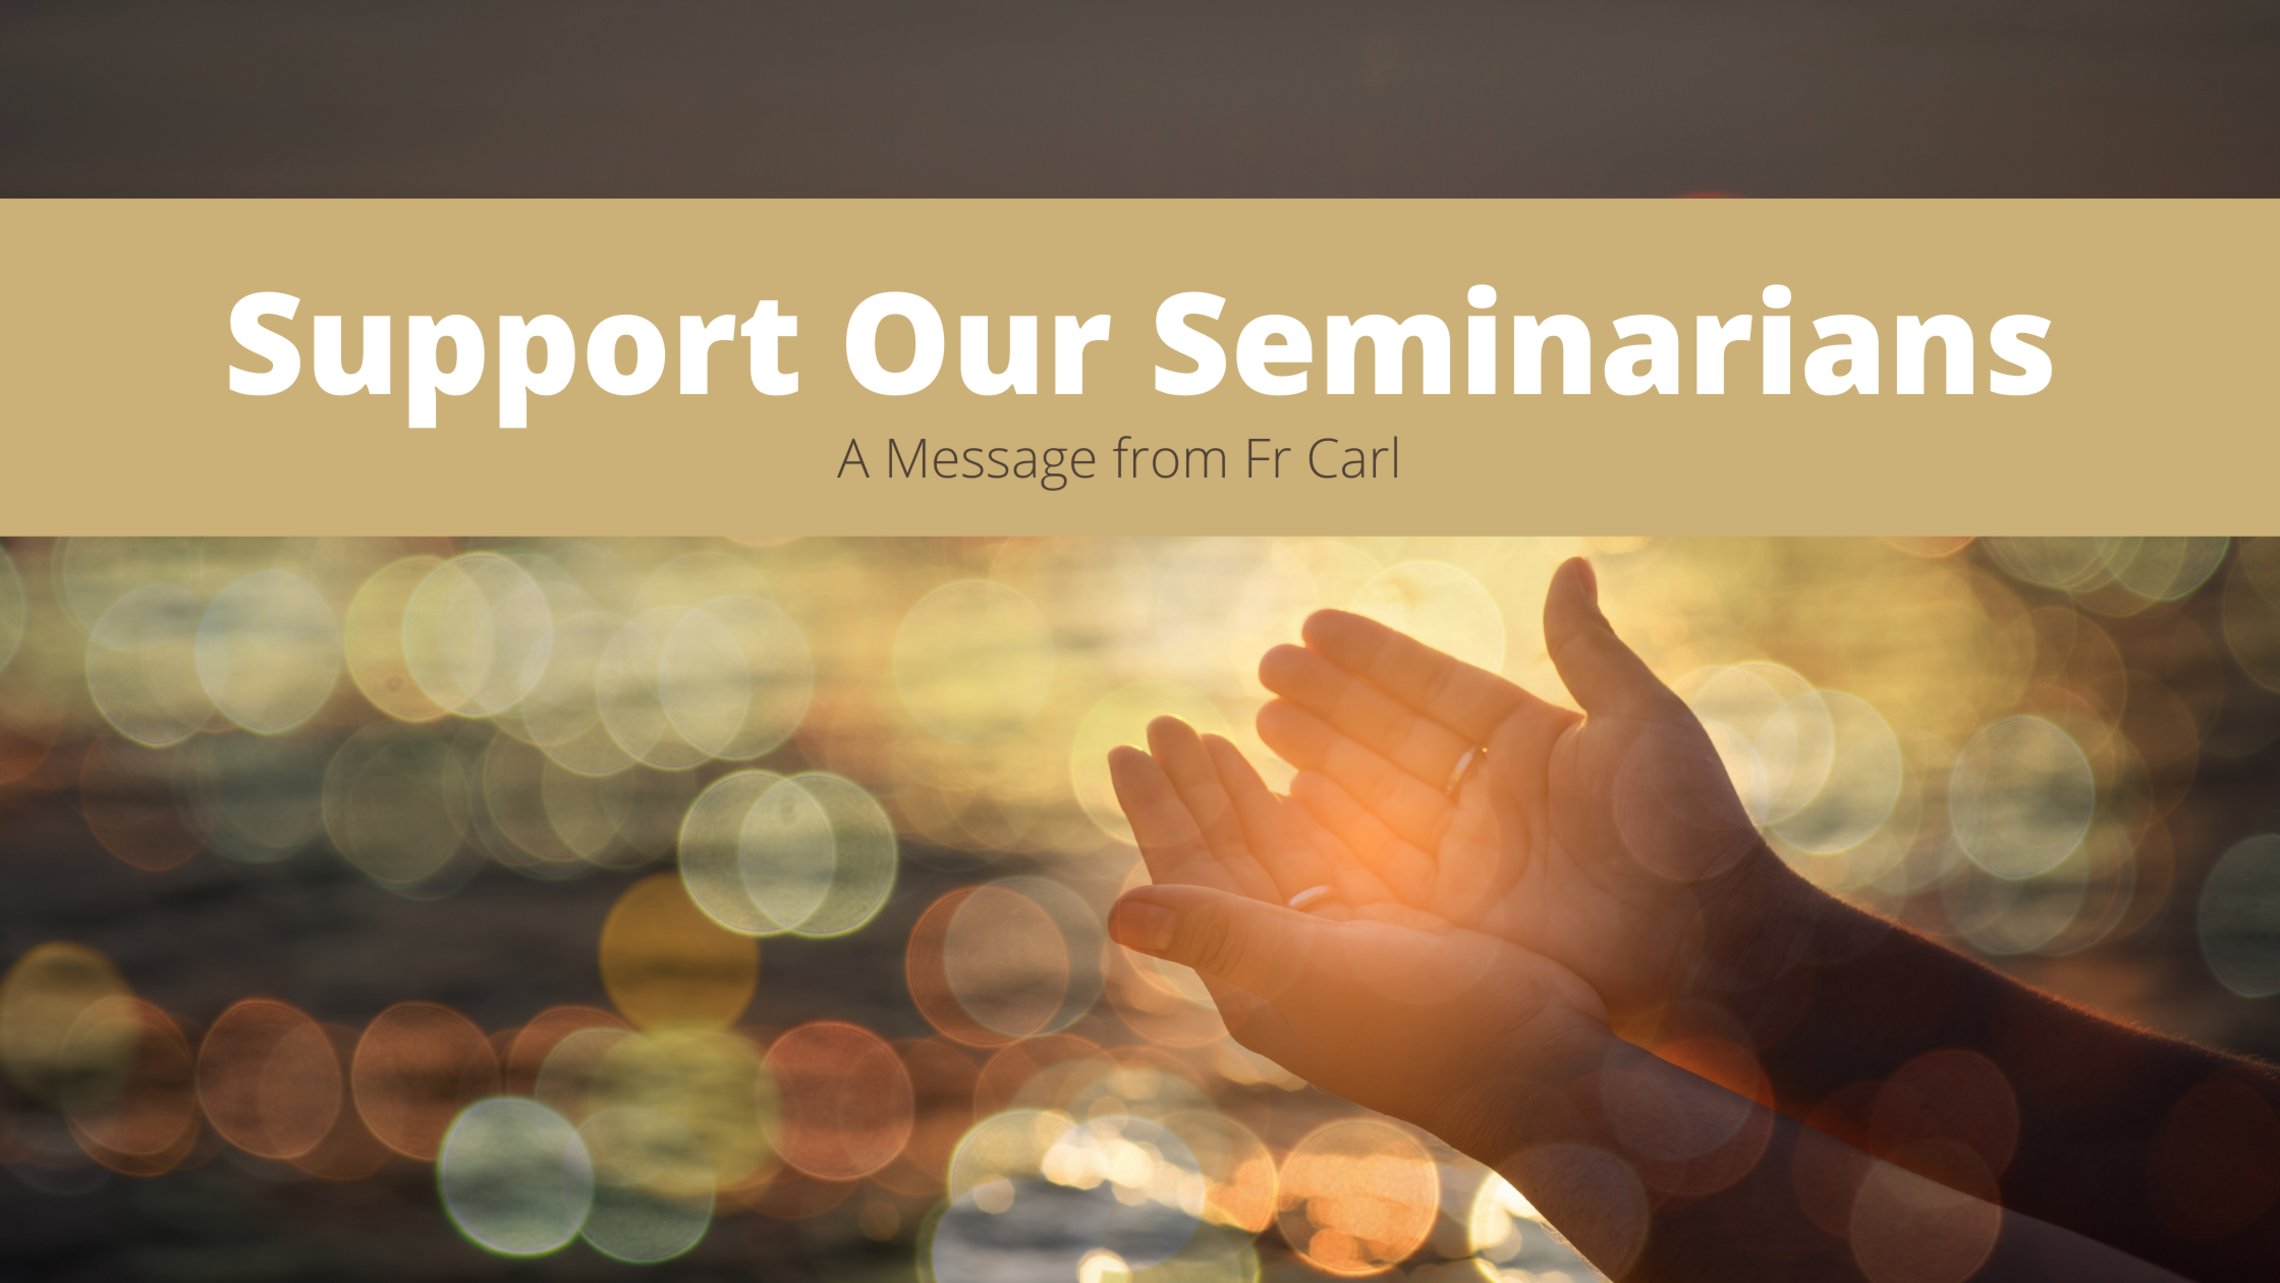 Support Our Seminarians